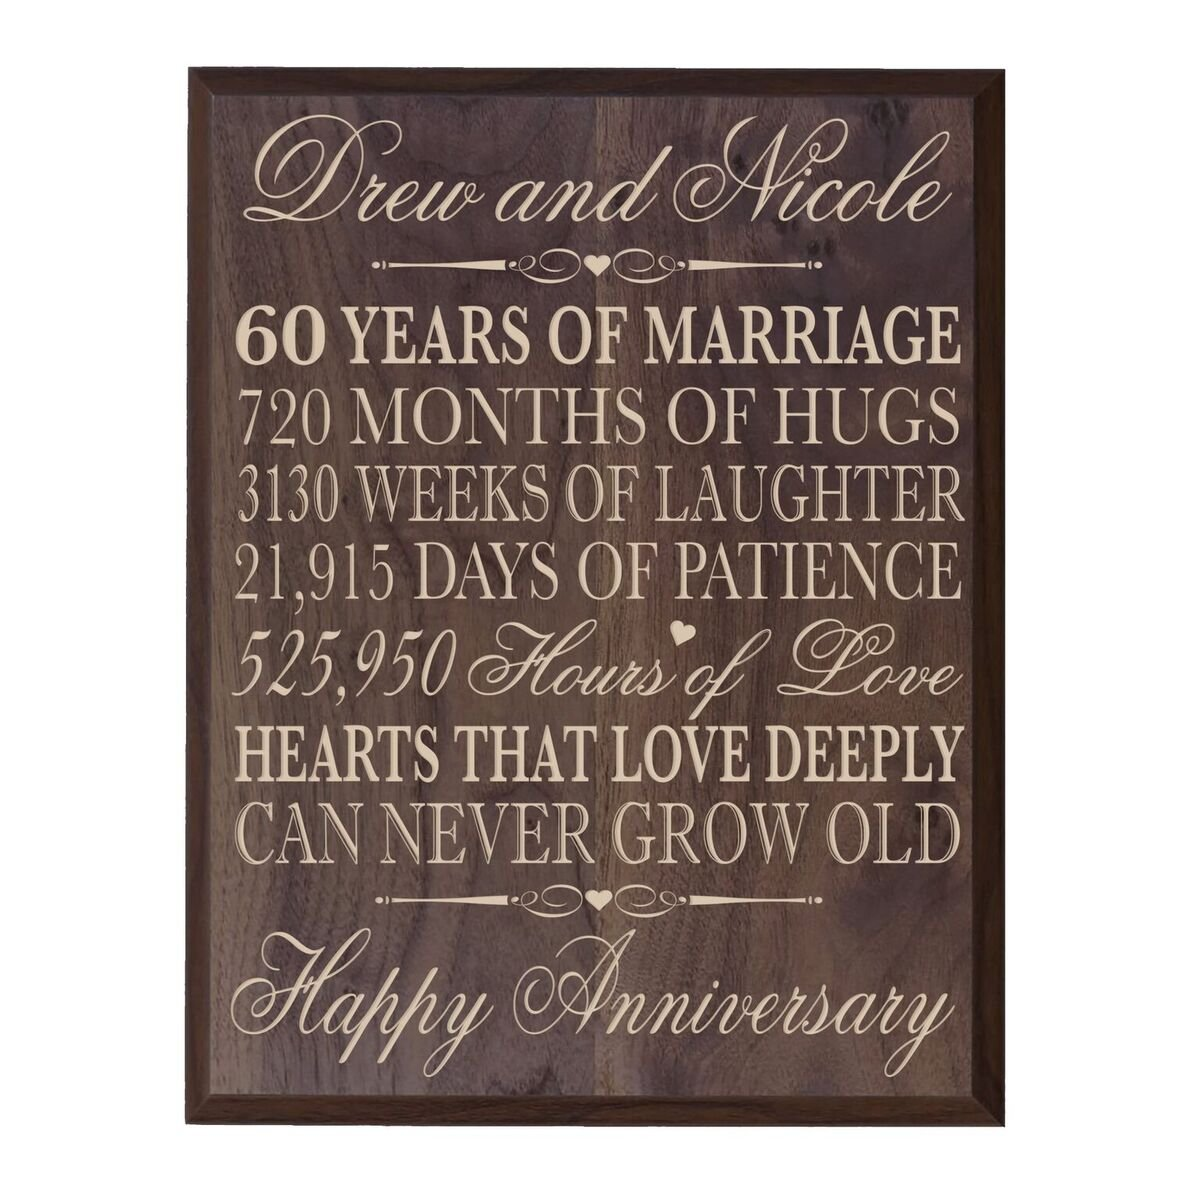 LifeSong Milestones Personalized 60th Wedding Anniversary Wall Plaque Gifts for Couple, Custom Made 60th 12'' W X 15'' H Wall Plaque (12'' x 15'' x 1/2'', Grand Walnut)